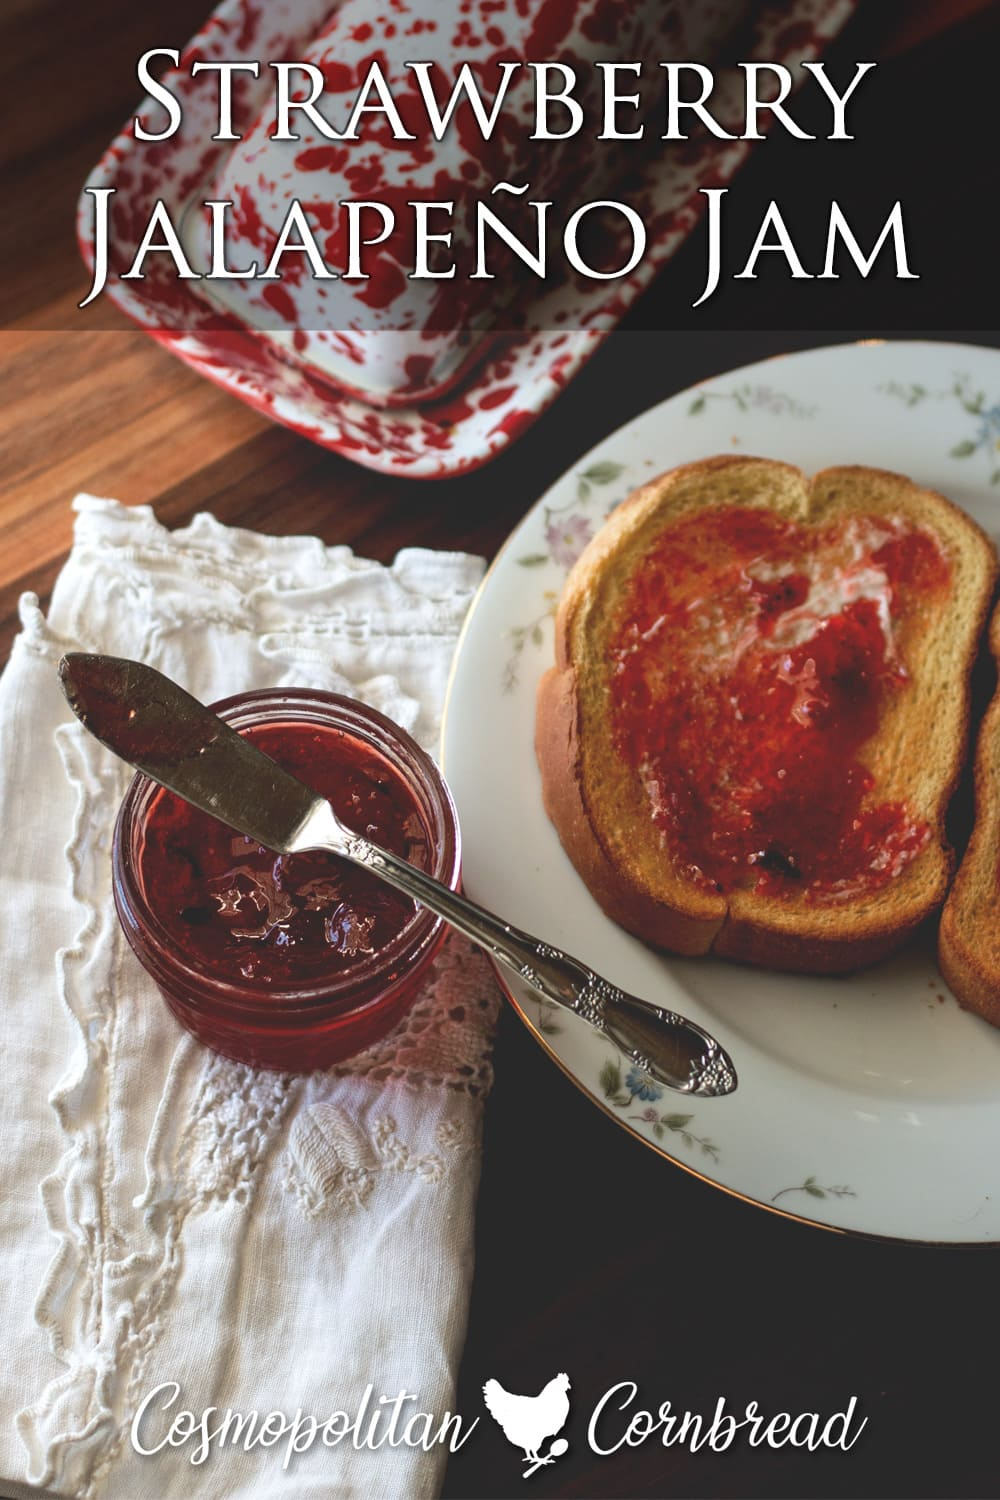 You'll decide very quickly that this Strawberry Jalapeño Jam is the best jam you have ever tasted. Seriously.